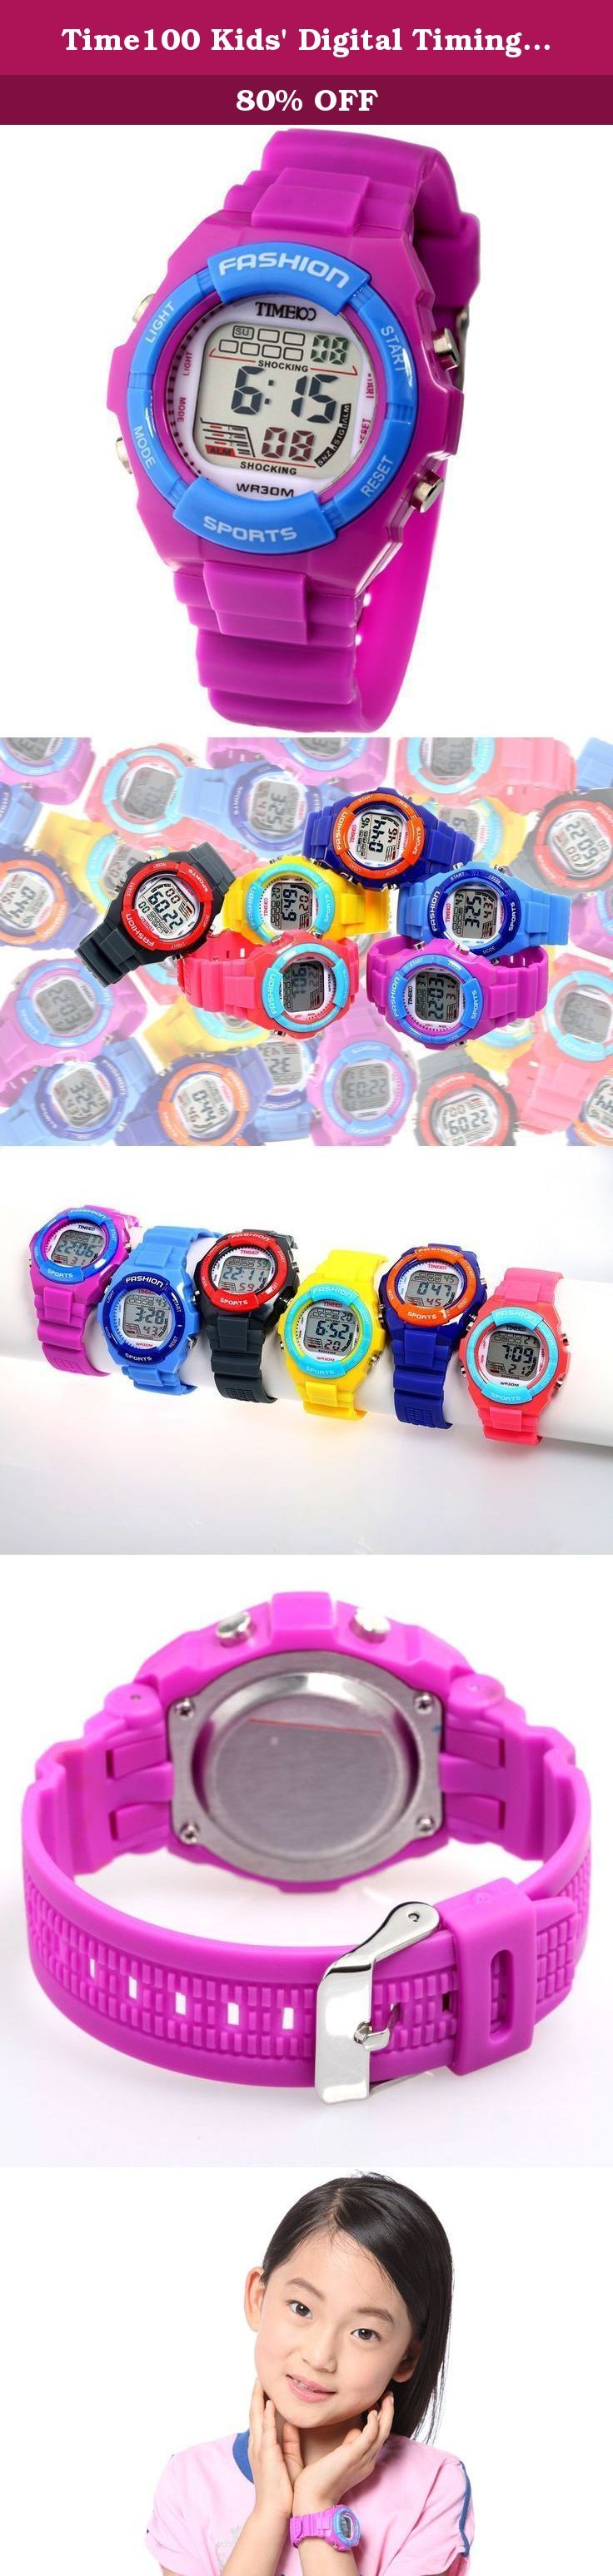 Time100 Kids' Digital Timing Multifunctional Purple Strap Sport Electronic Watch #W40011L.06A. How to Set up a Digital Watch Setting time: Press MODE button 3 times to set day, date, month, hour, minute and second. Use START button to set the number and use RESET button to shift. Press MODE button to save and exit the settings. Setting alarm: Press MODE button 2 times to set alarm time. Use START button to set the number and use RESET button to shift. Press MODE button to save and exit…